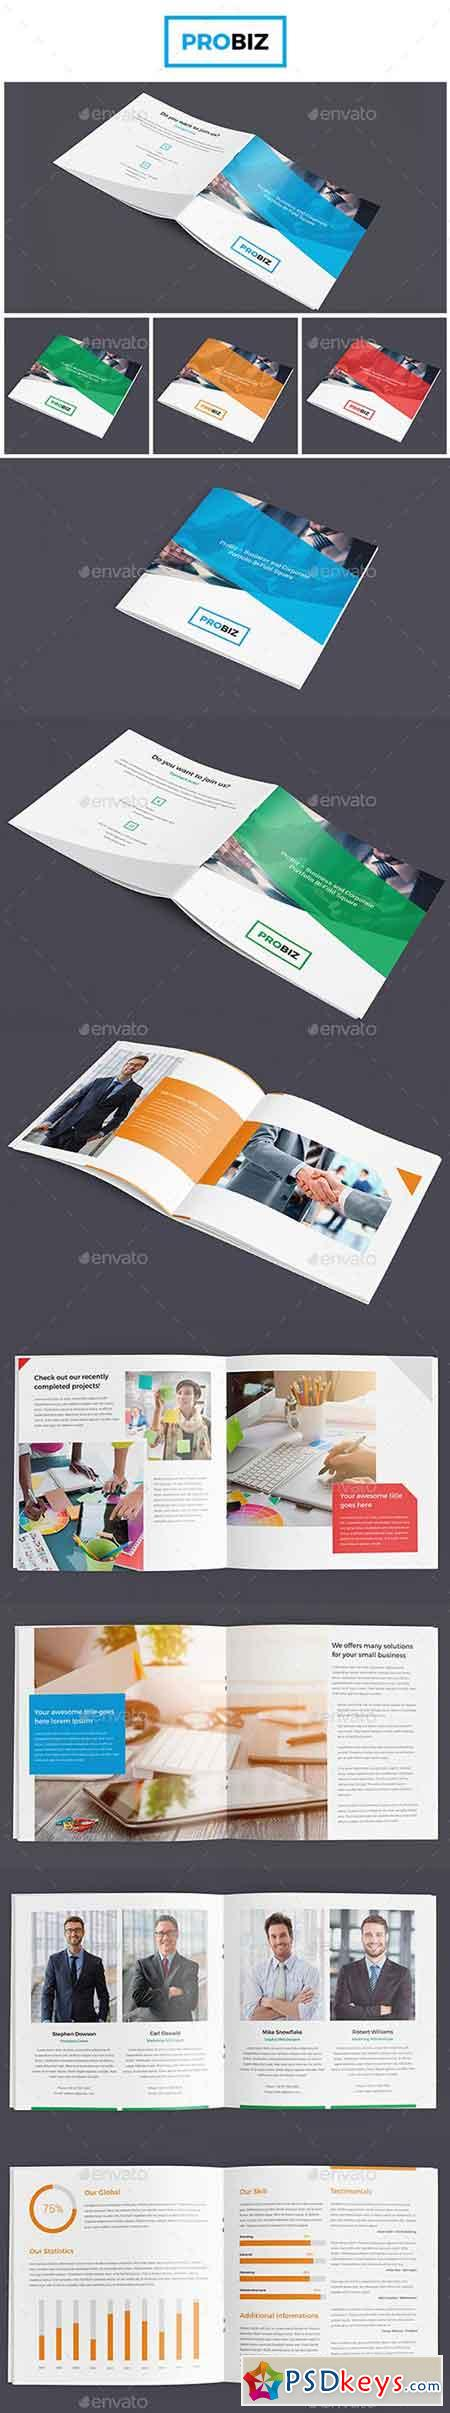 ProBiz – Business and Corporate Portfolio Bi-Fold Square 19079782